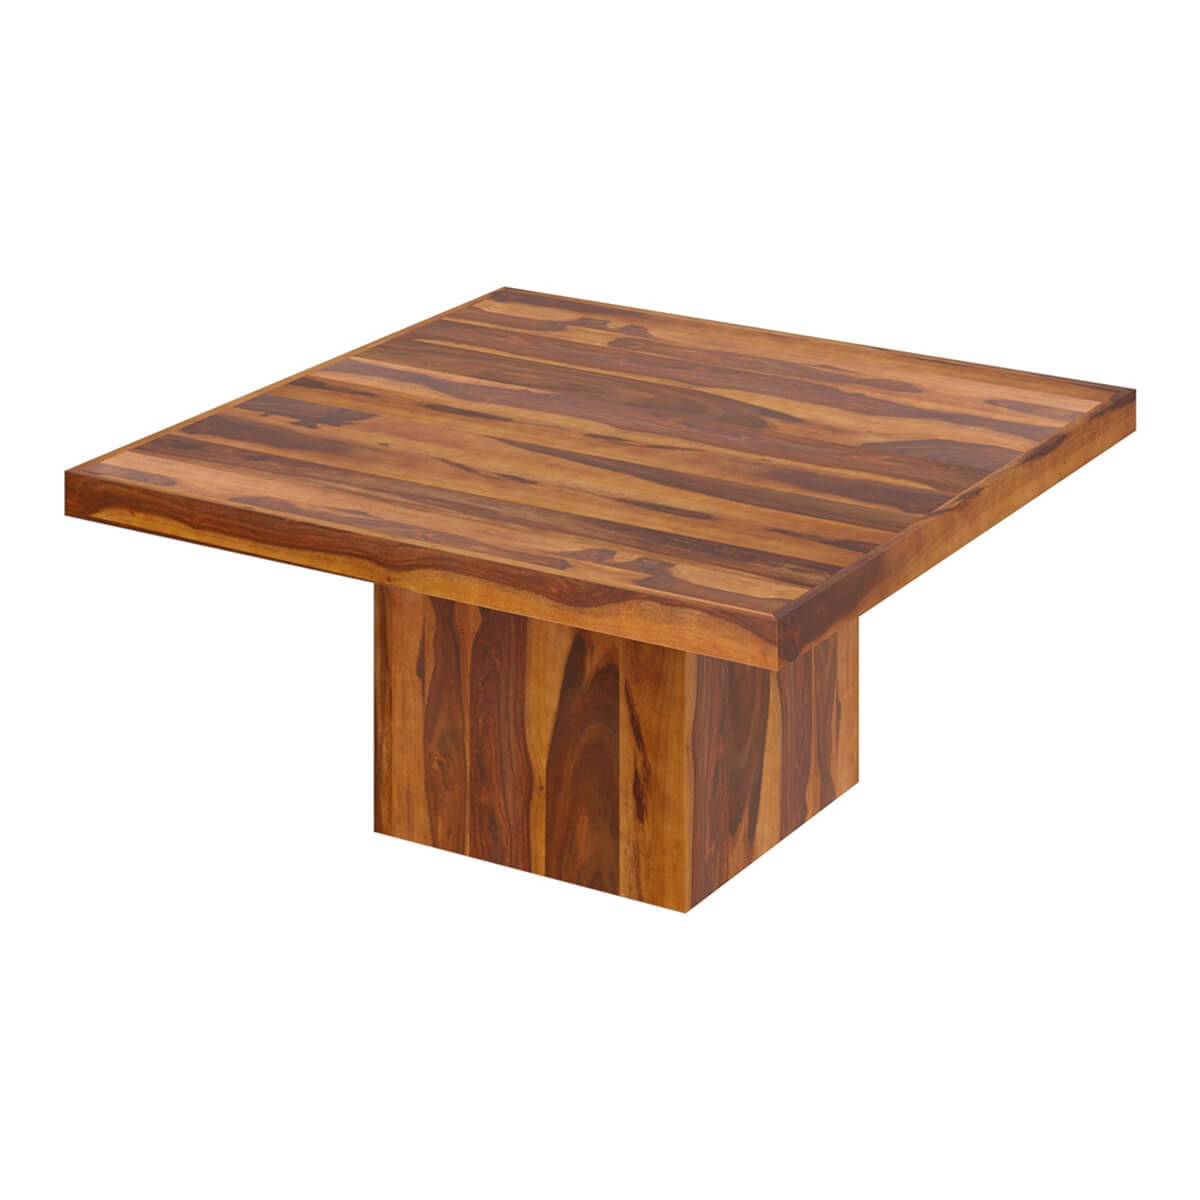 Solid wood modern rustic block pedestal square dining for Wood modern dining table